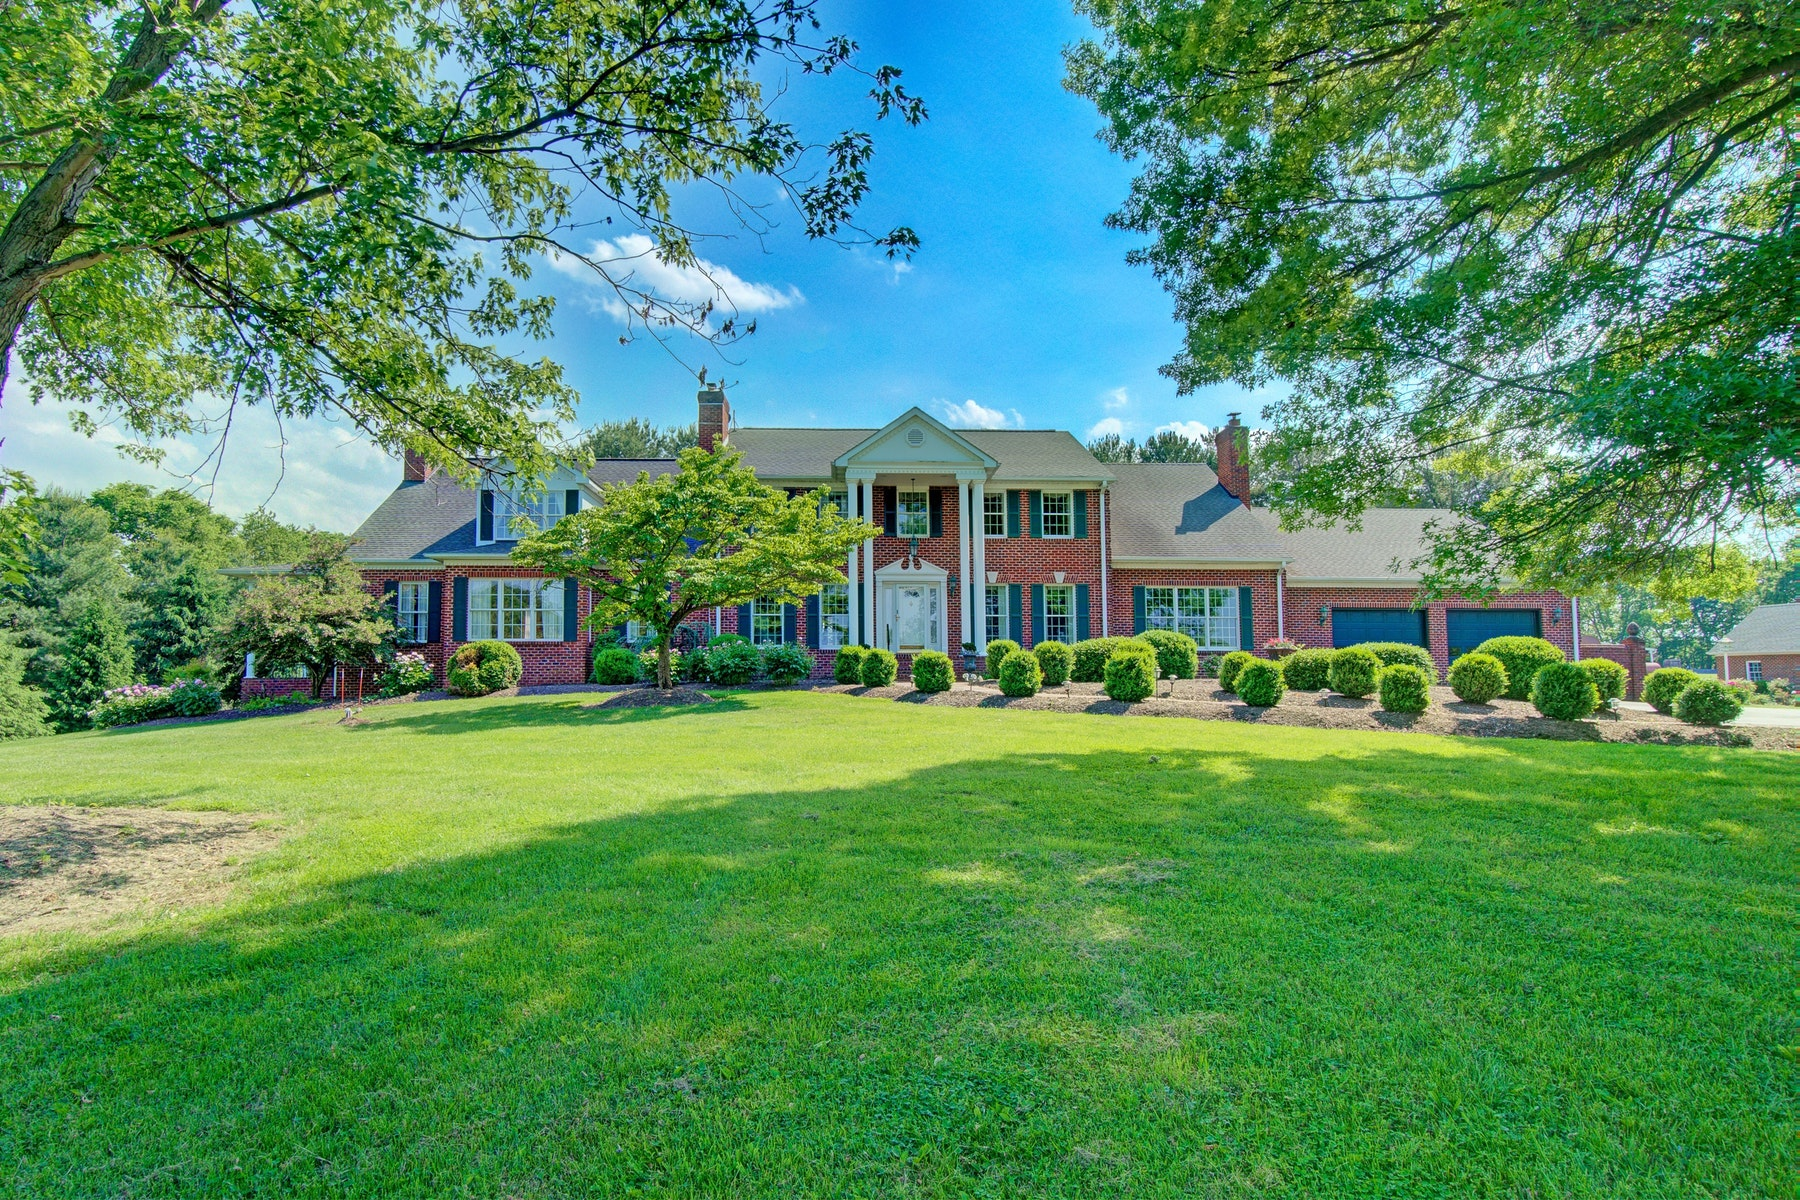 Single Family Homes for Active at 487 Mill Lane Charles Town, West Virginia 25414 United States